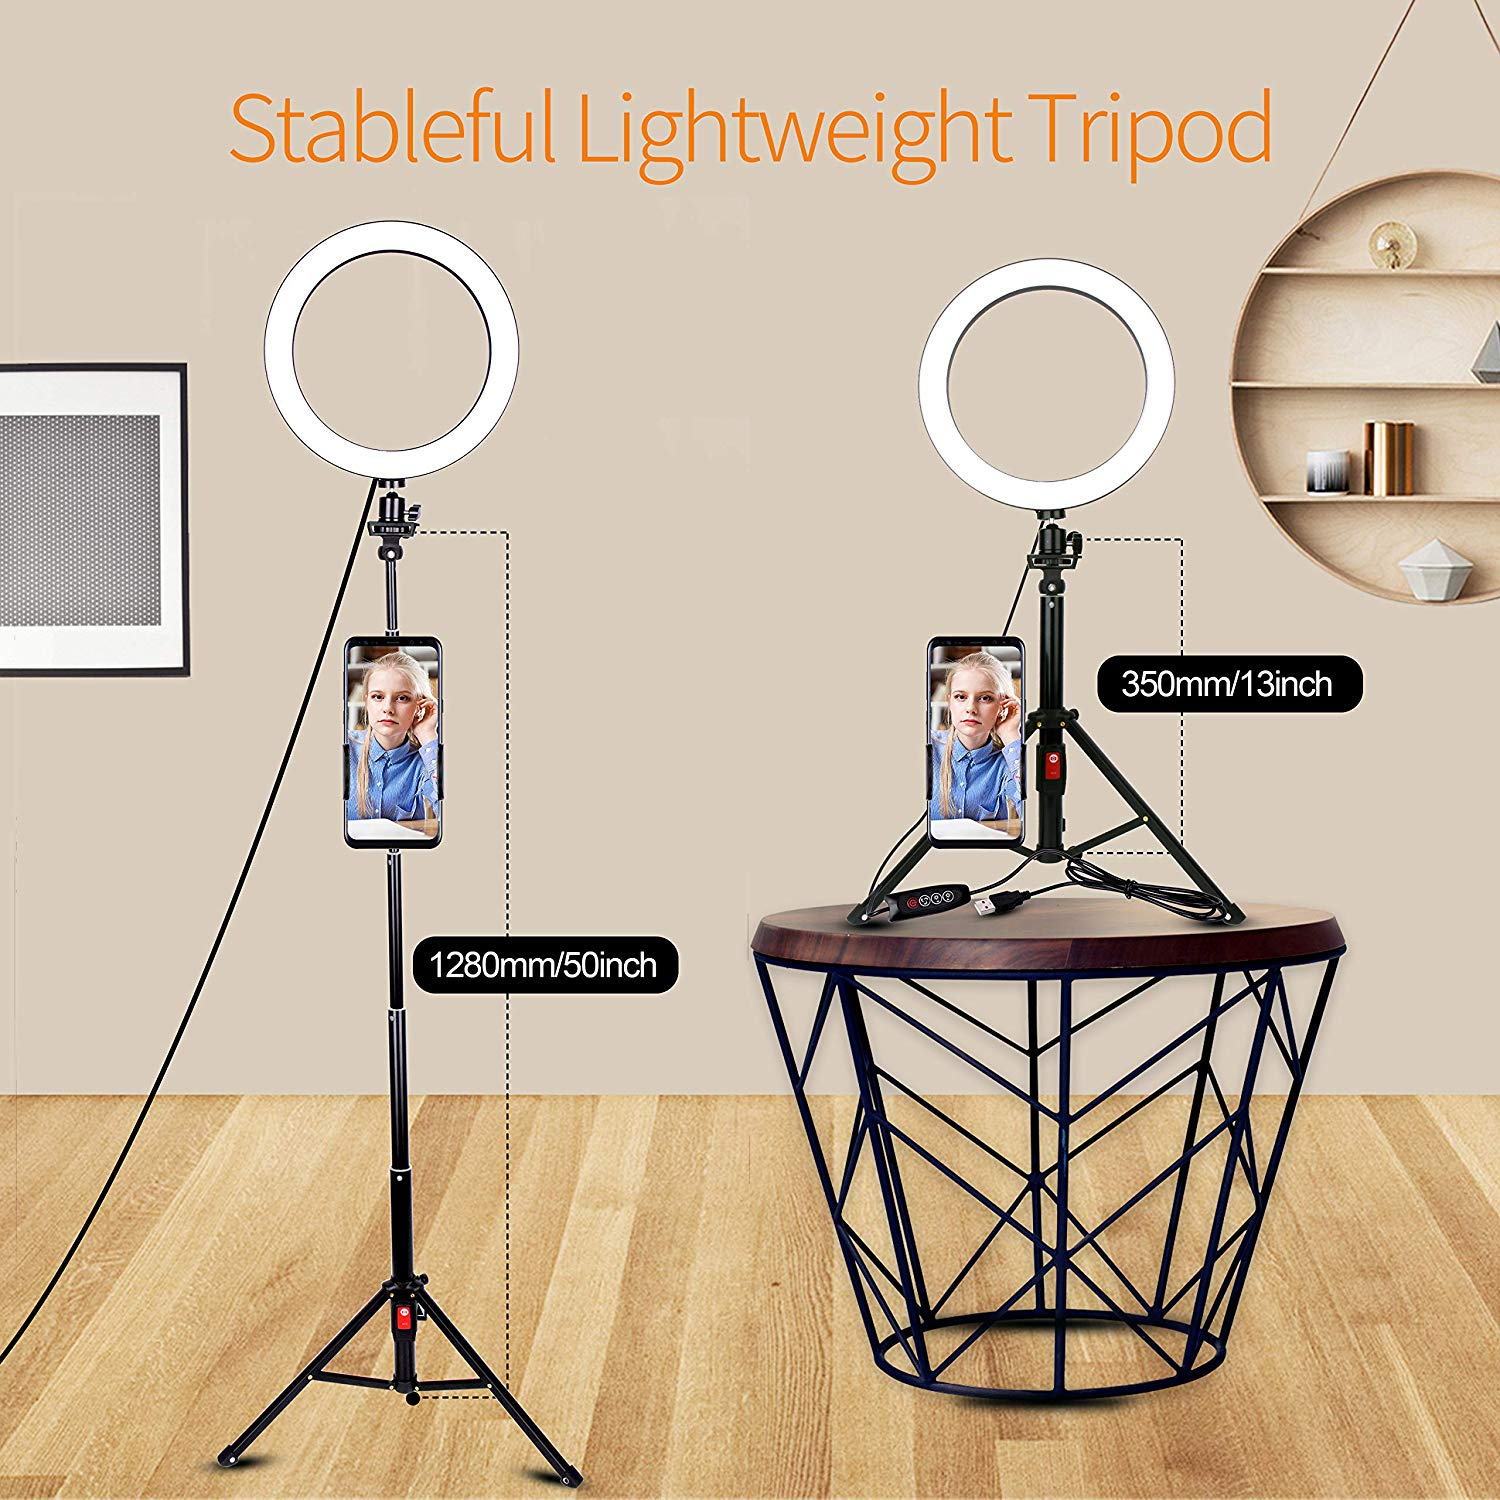 Emart 10-inch Selfie Ring Light with Adjustable Tripod Stand & Cell Phone Holder - EMART8